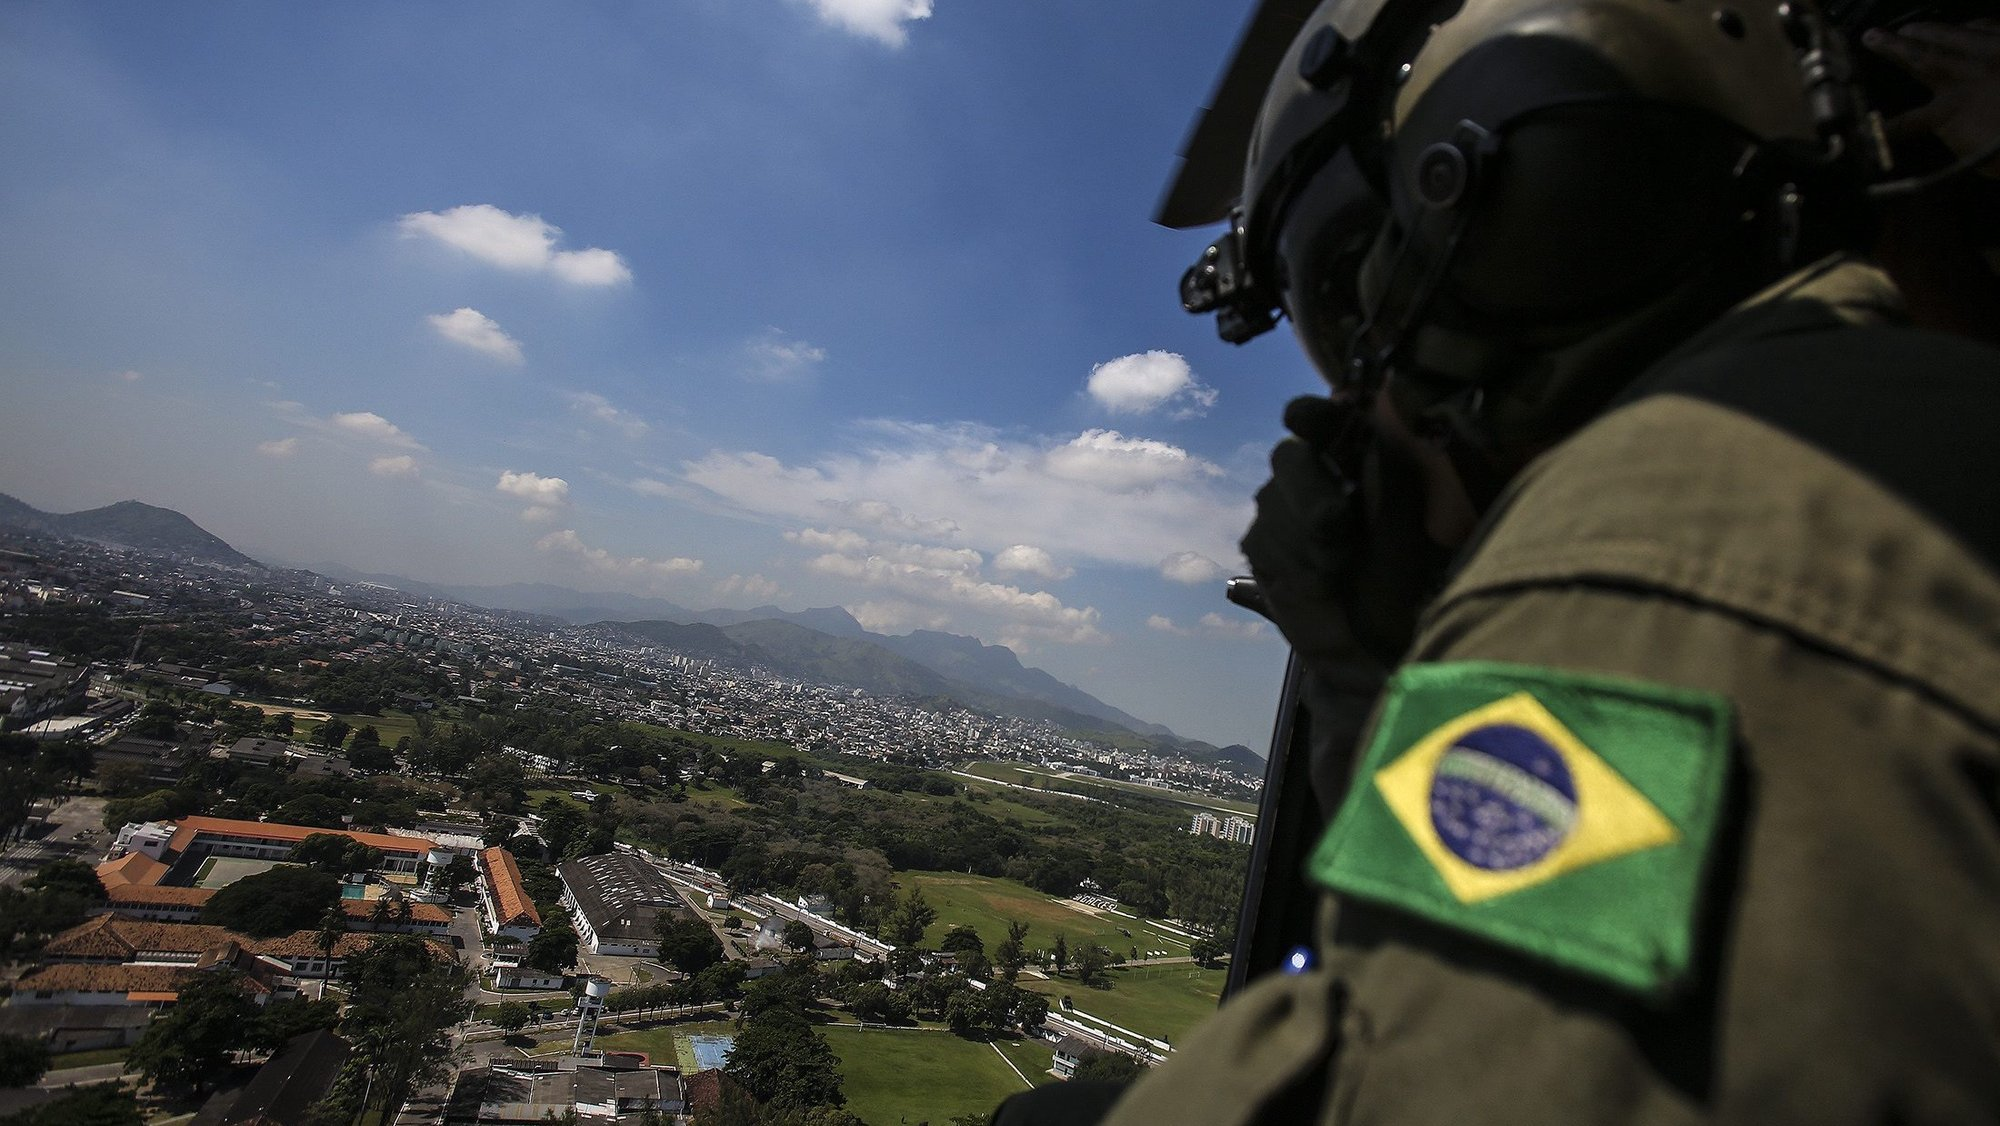 epa05246706 Brazilian Air Force soldiers fly over the neighborhood of Deodoro, venue for several Olympic events, as part of the operation 'Pao de Acucar' ('Sugar Loaf') security preparations for the 2016 Rio Olympics, in Rio de Janeiro, Brazil, 06 April 2016.  EPA/Antonio Lacerda